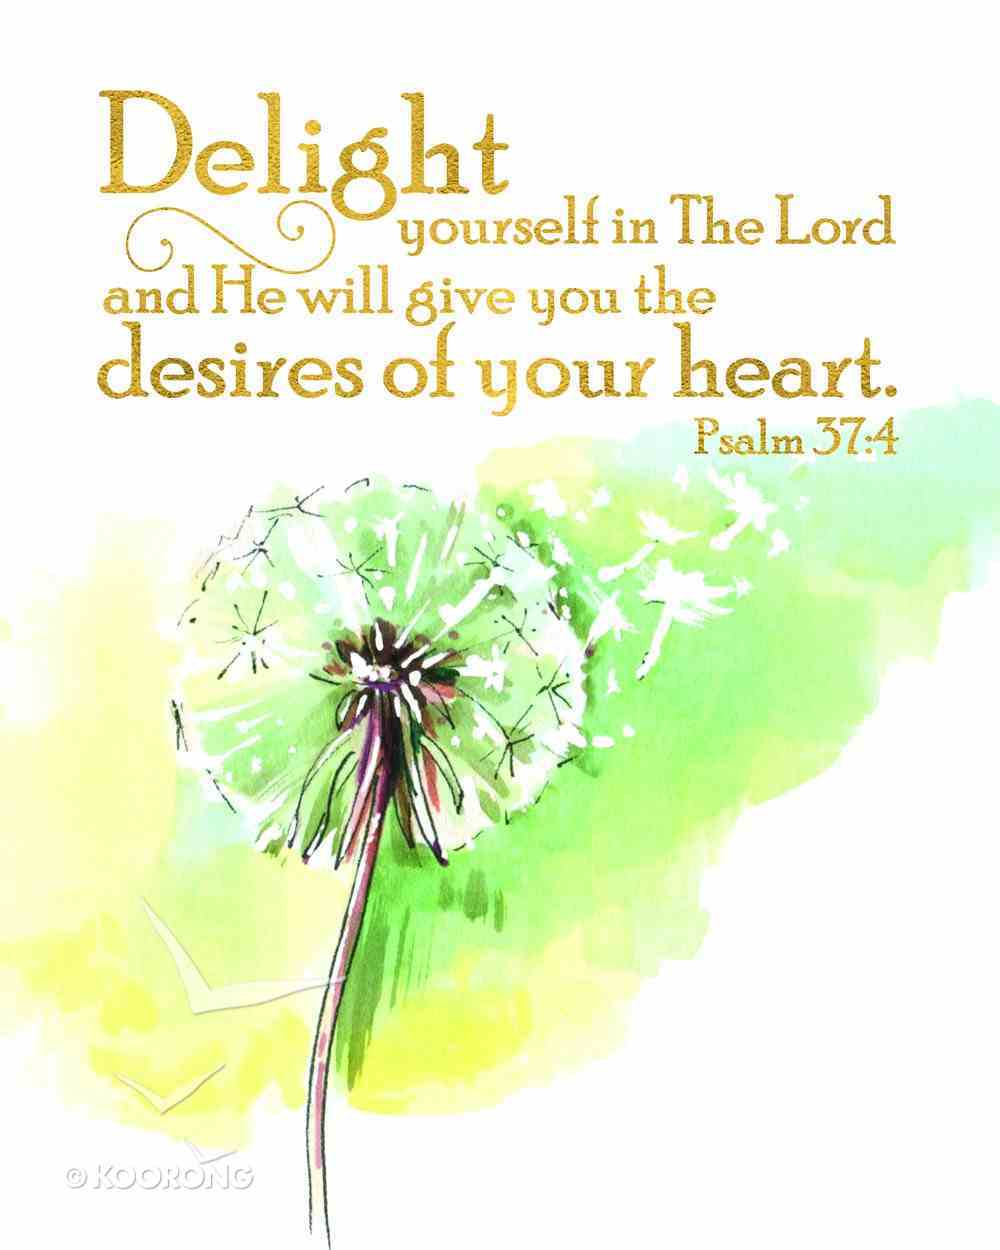 Medium Framed Print: Watercolour Green Flower, Delight, Psalm 37:4 Plaque